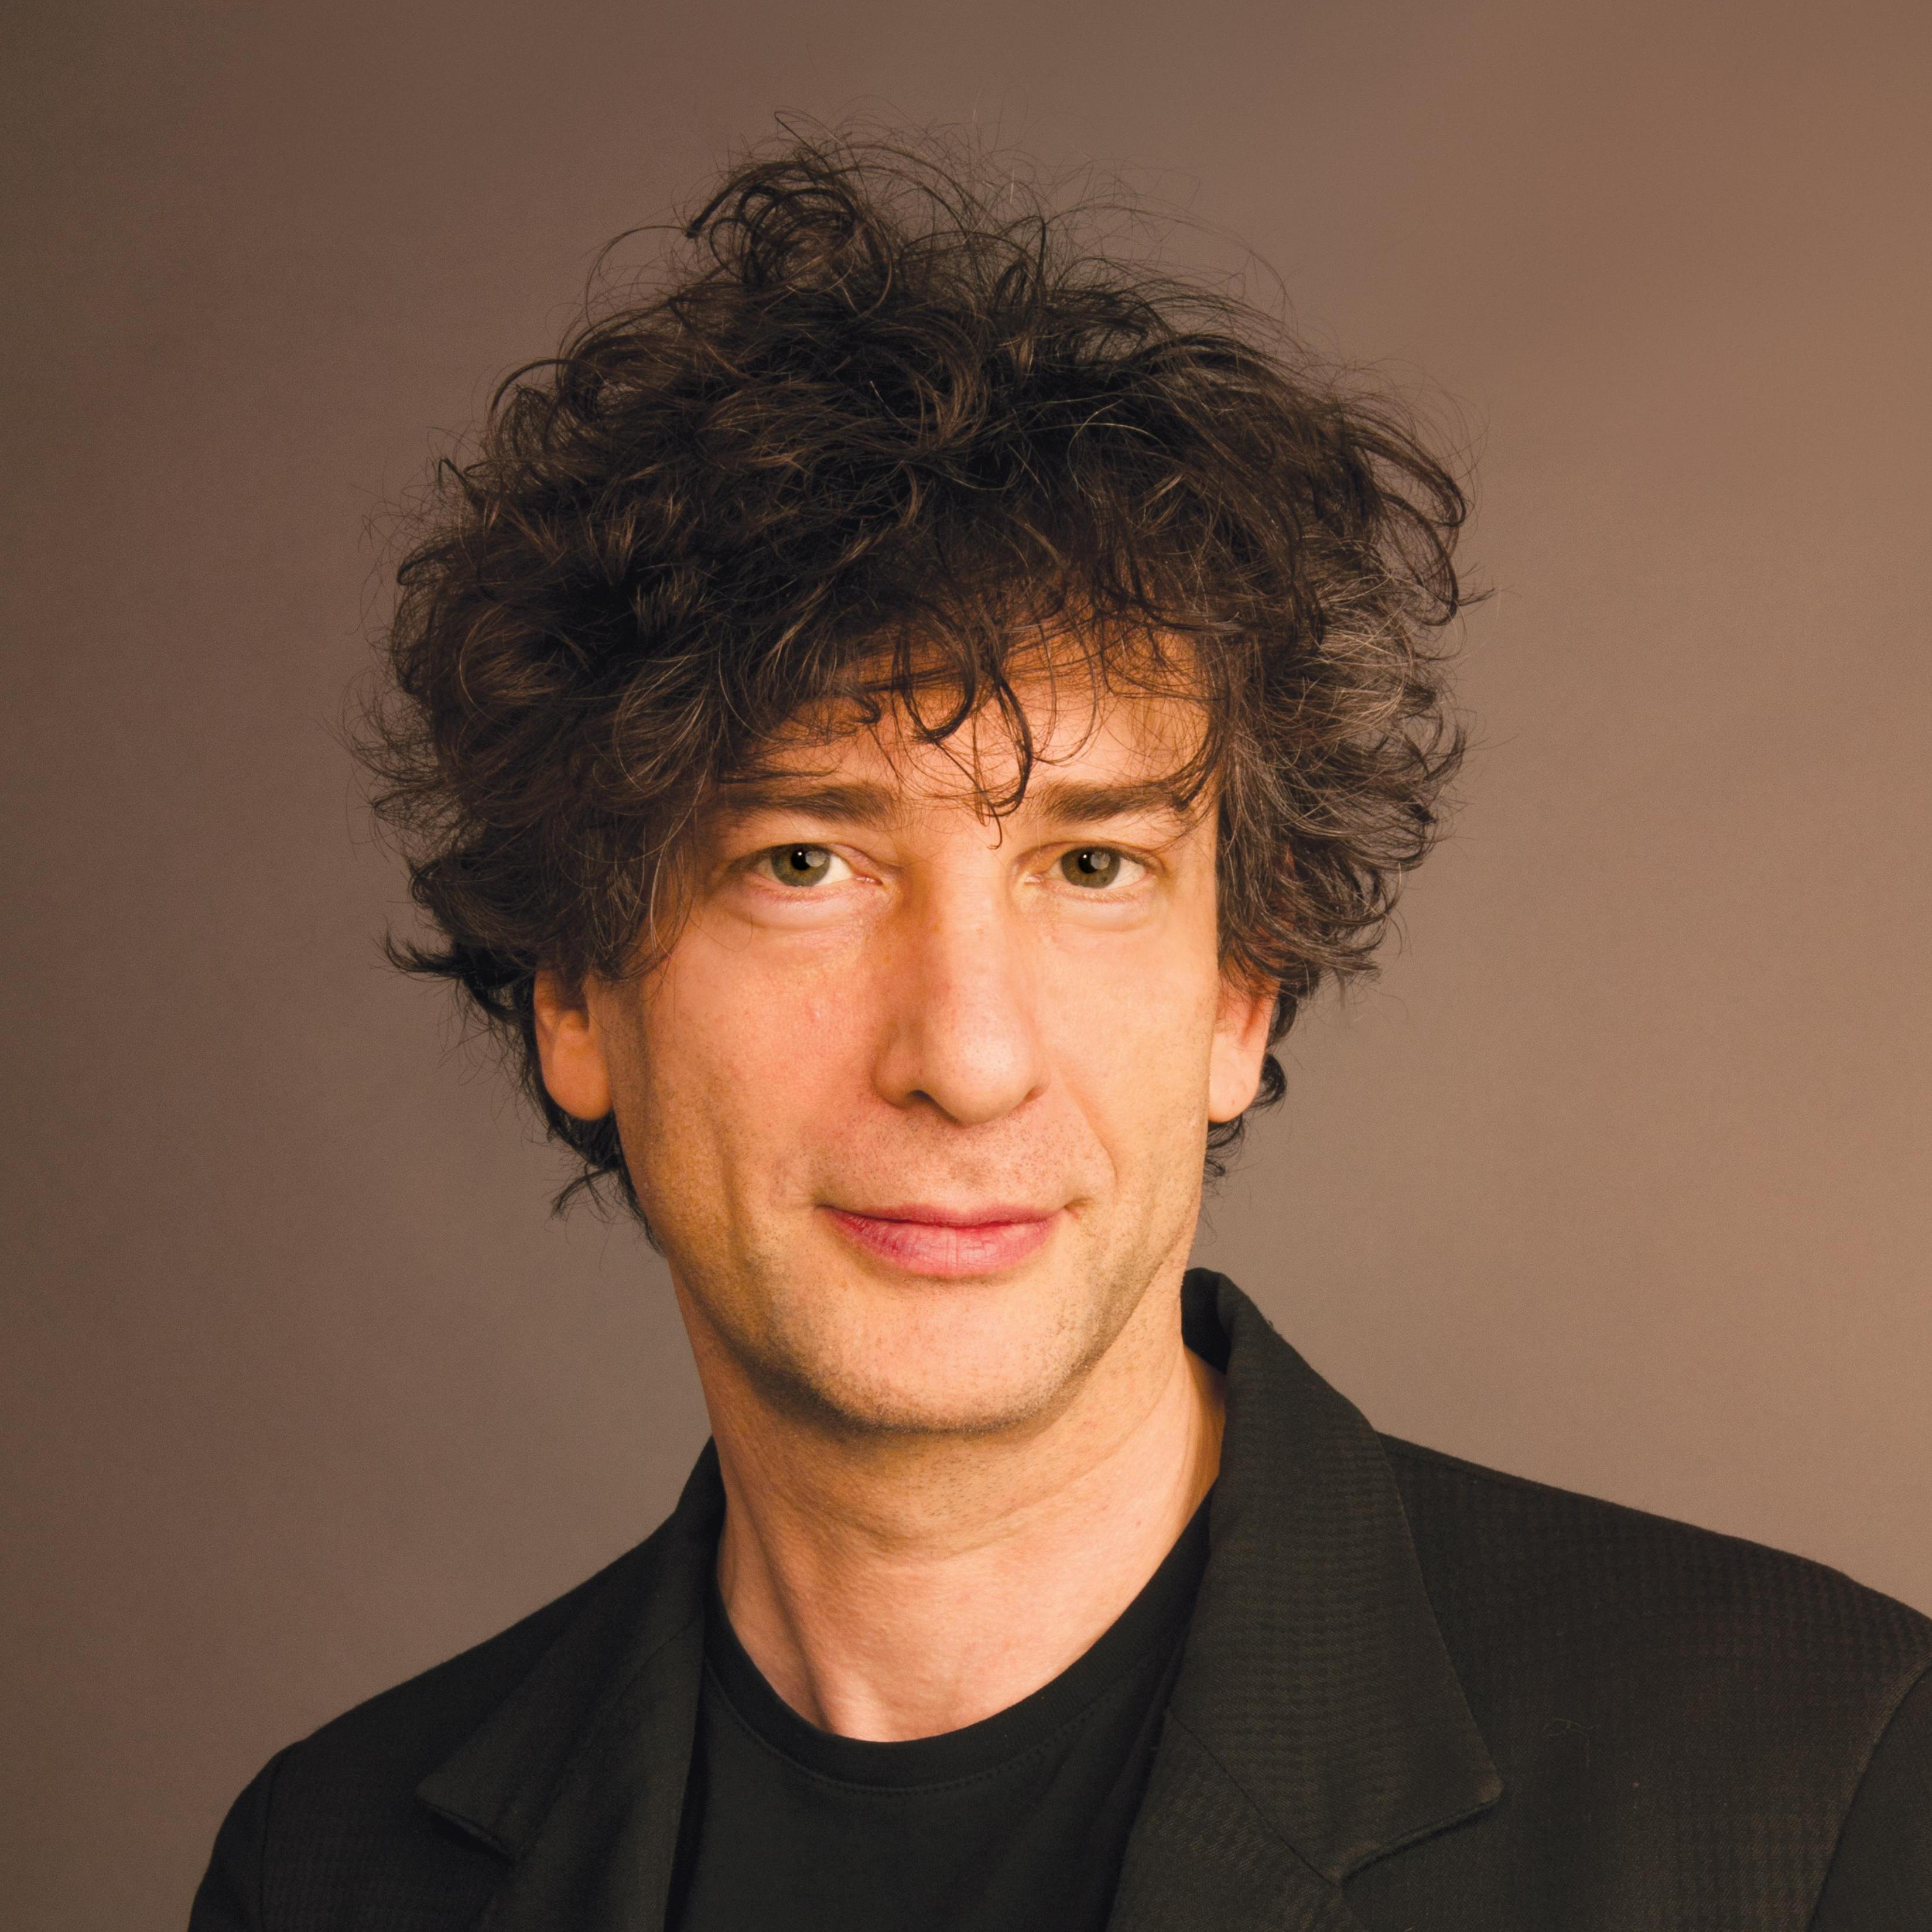 Neil Gaiman lives in Cambridge, Mass., with his wife, musician Amanda Palmer.